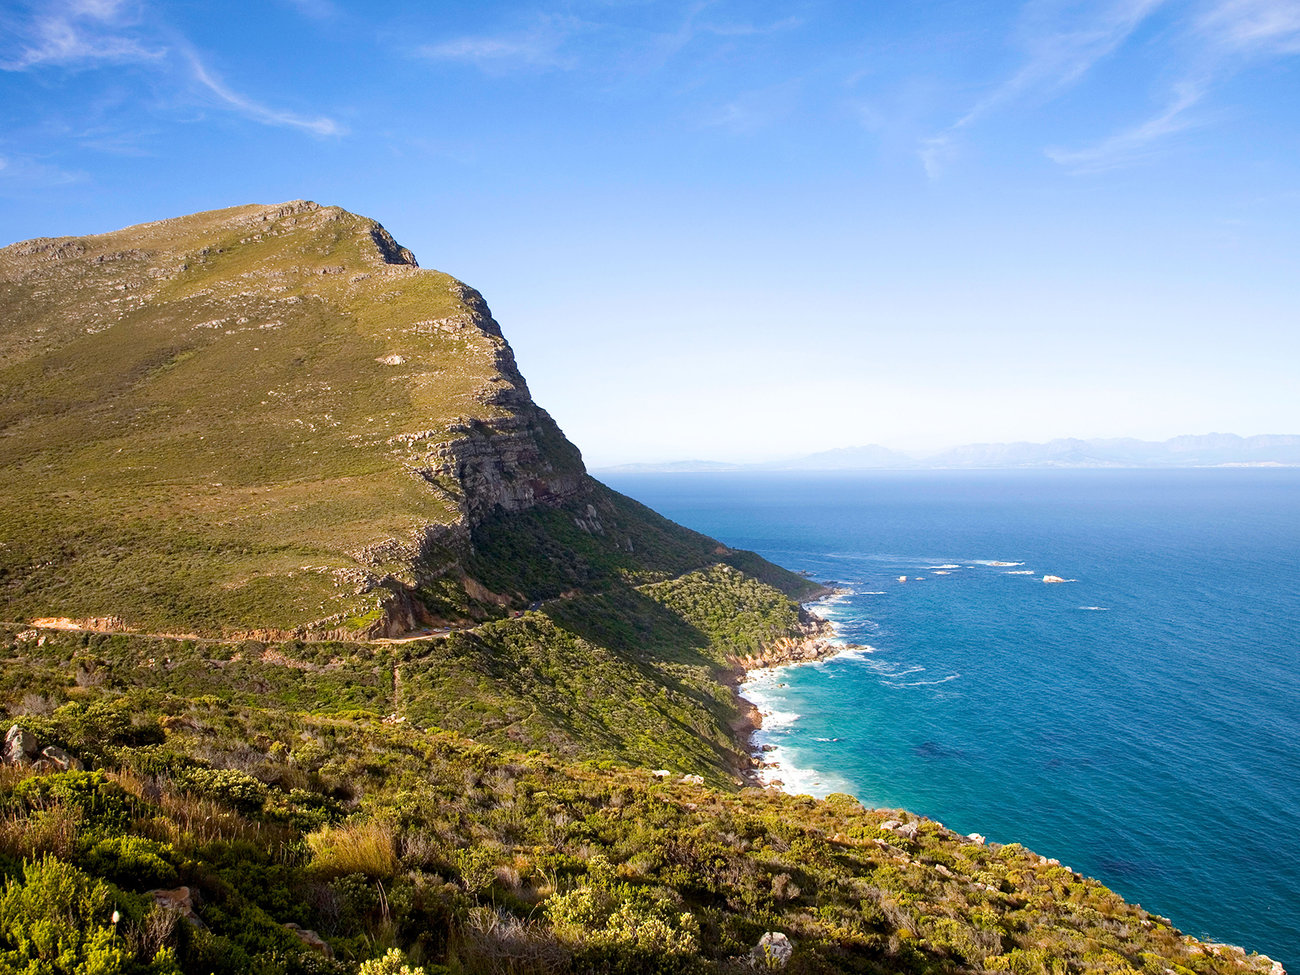 Cape of Good Hope in Cape Town